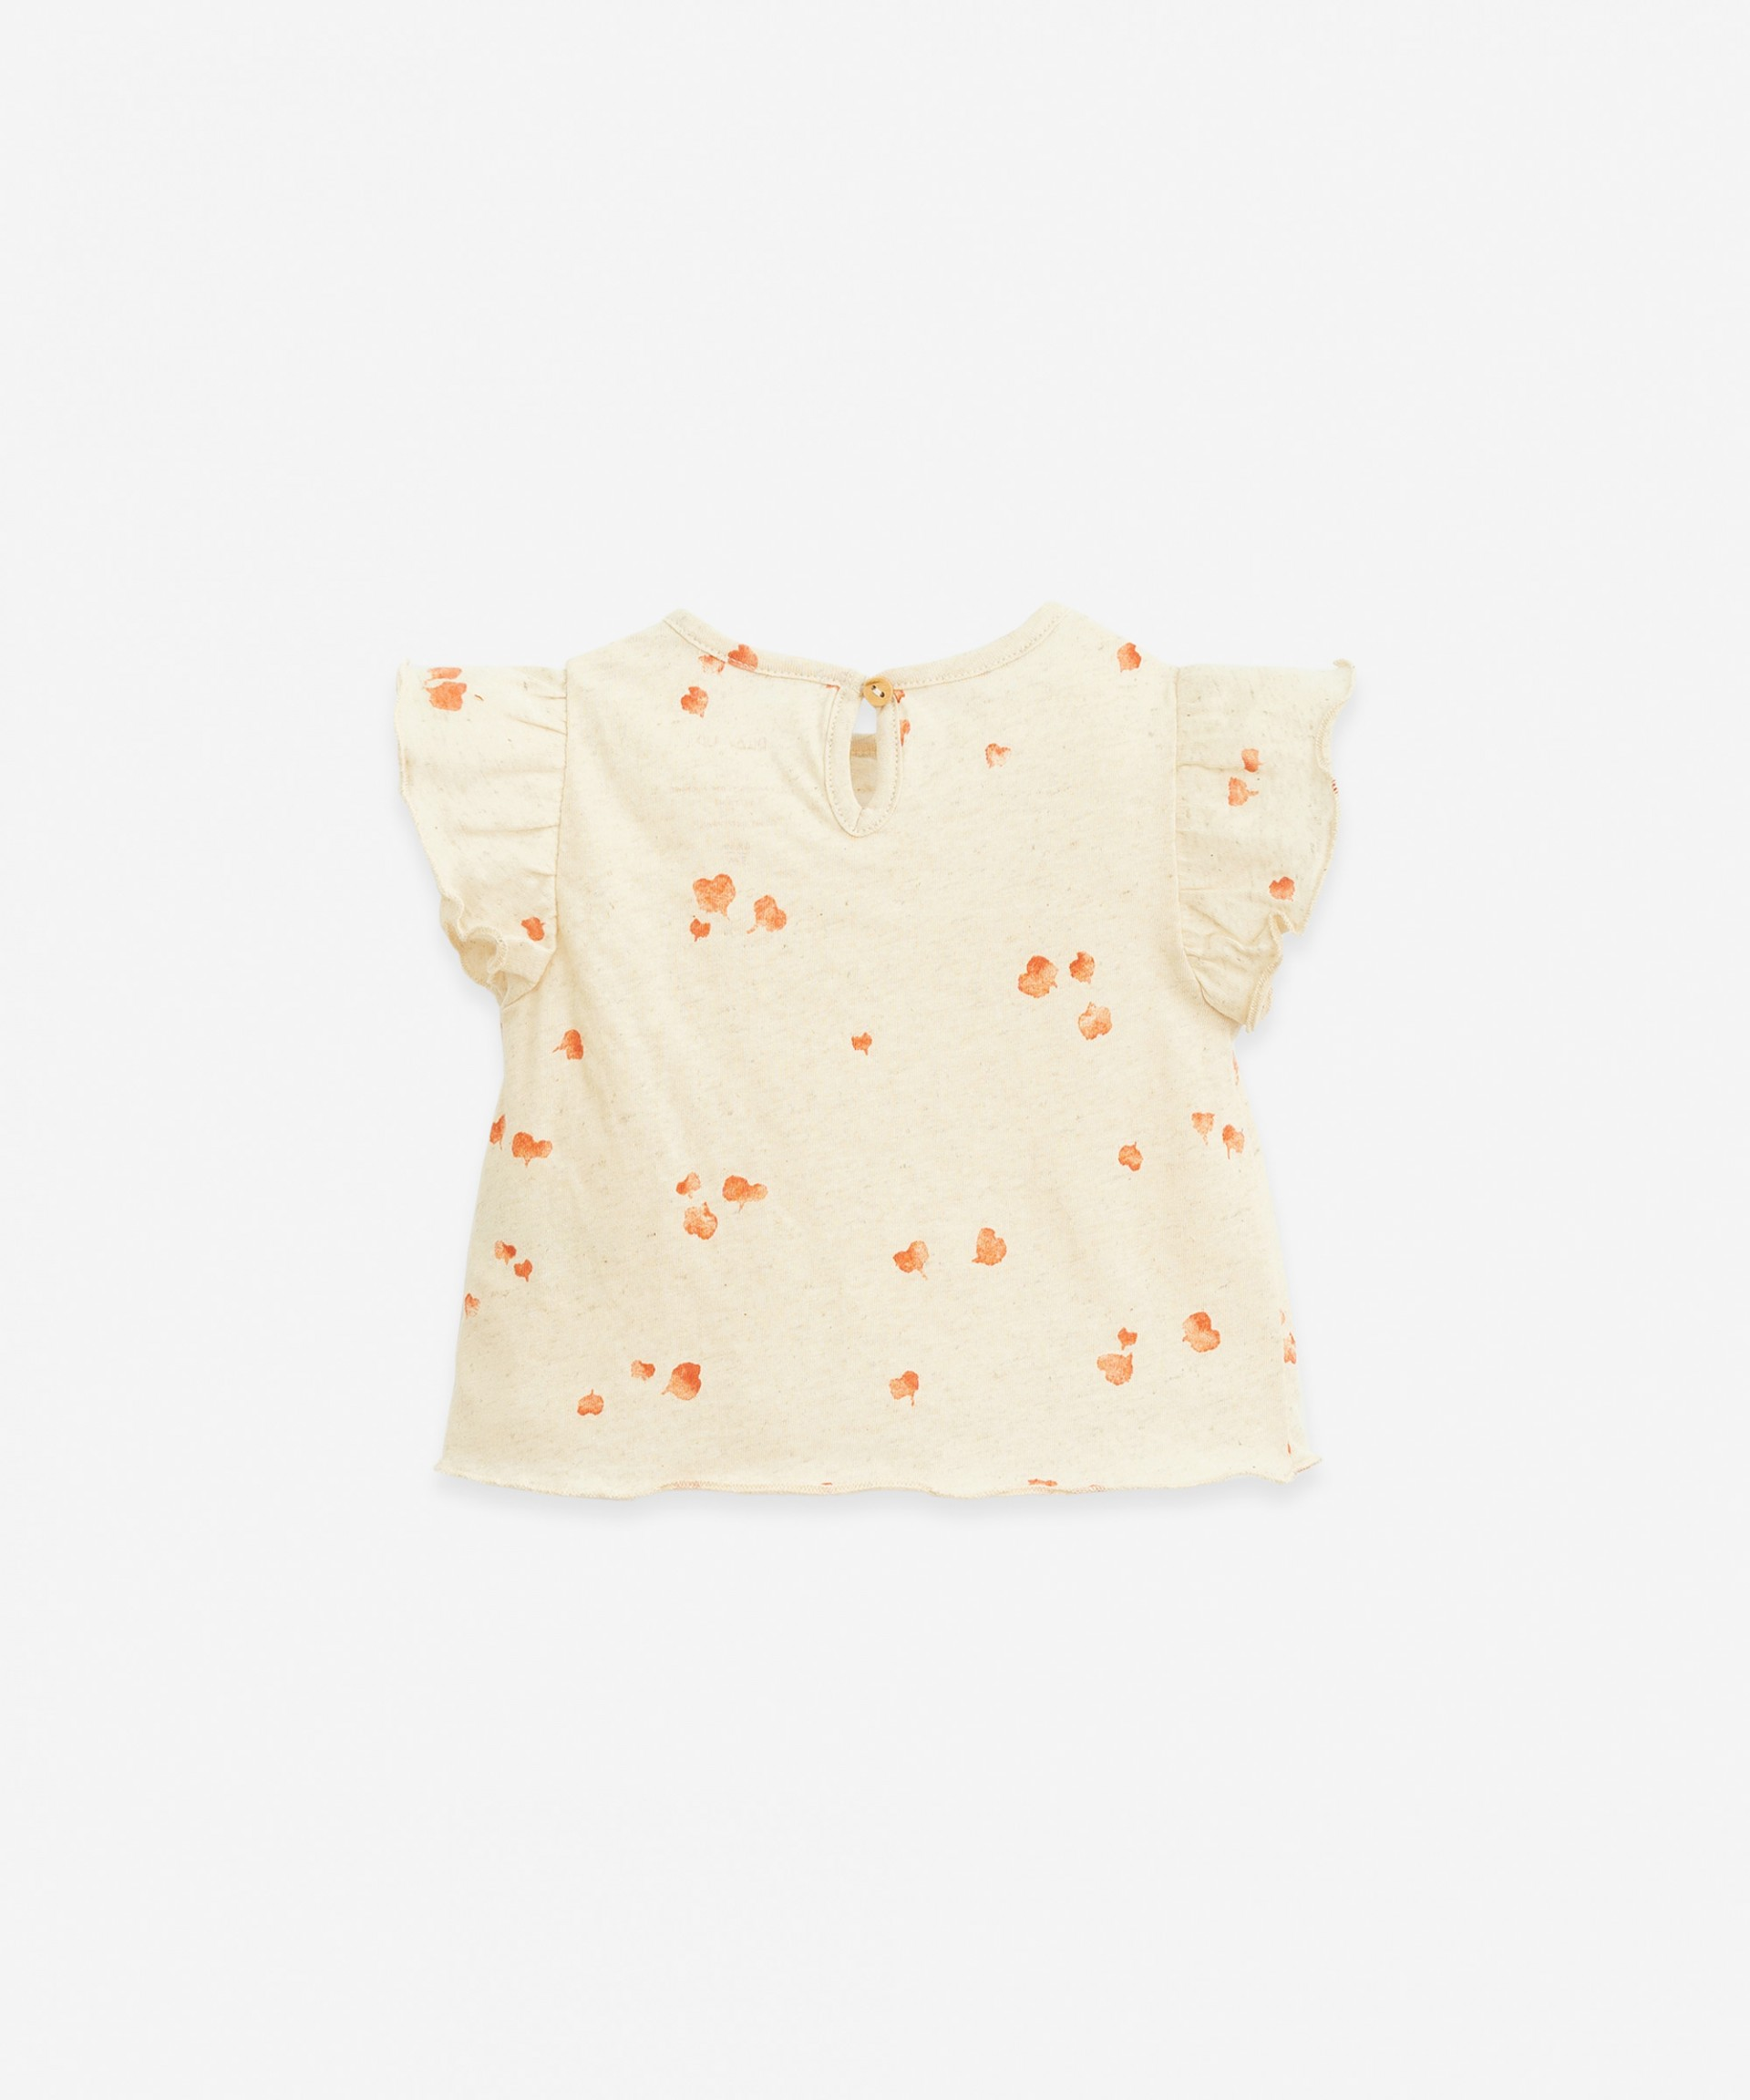 T-shirt with heart print | Botany